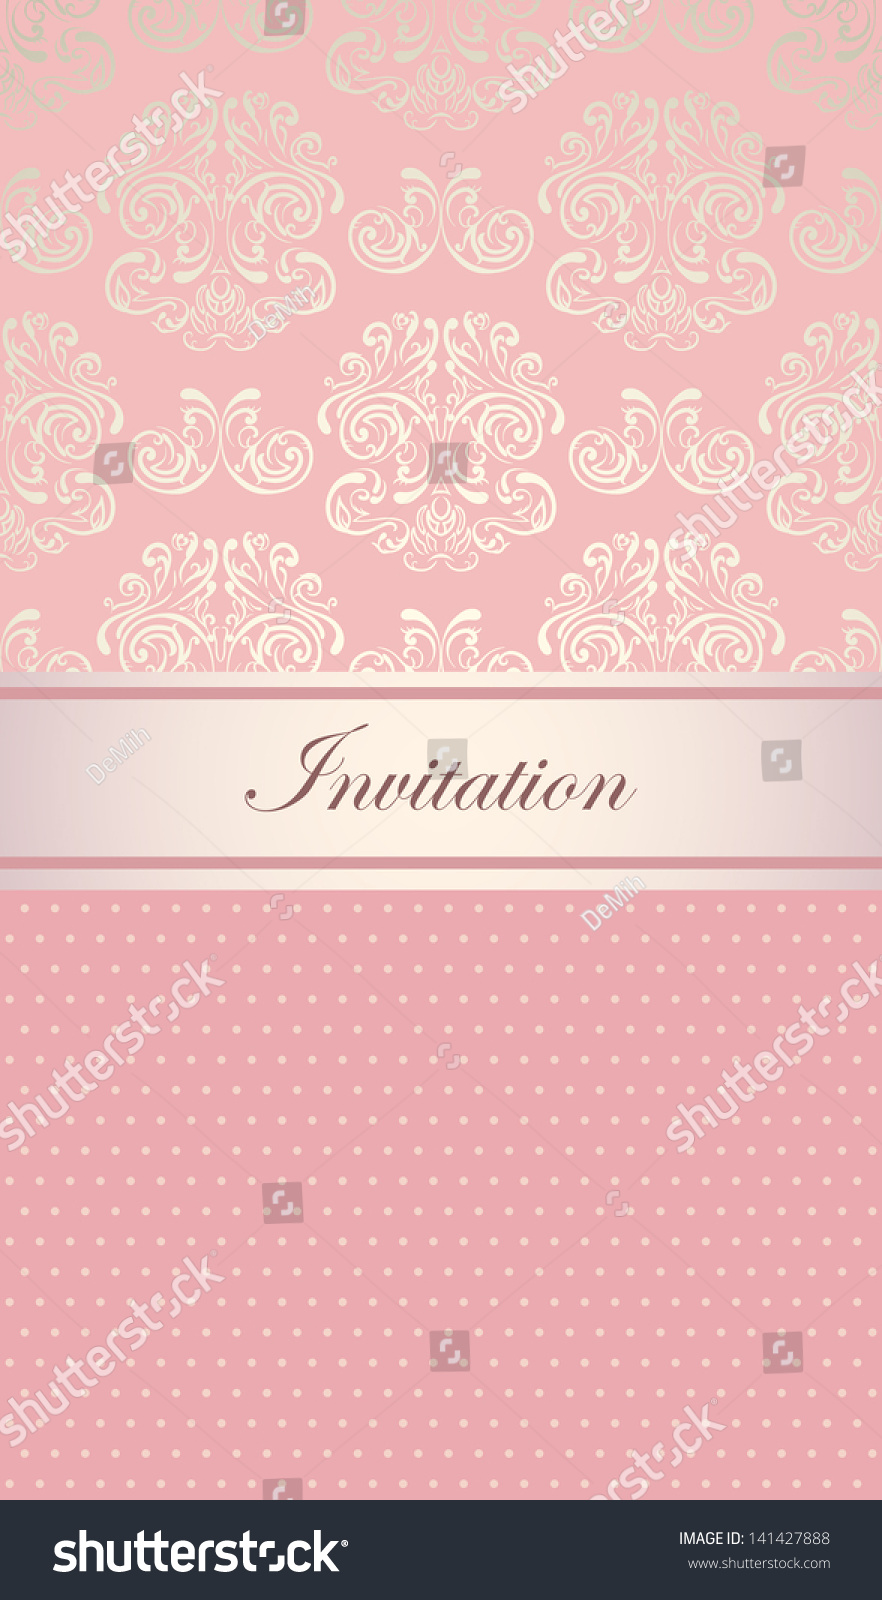 Elegant royal invitation card light pink stock vector 141427888 elegant royal invitation card with light pink design seamless abstract floral background stopboris Image collections